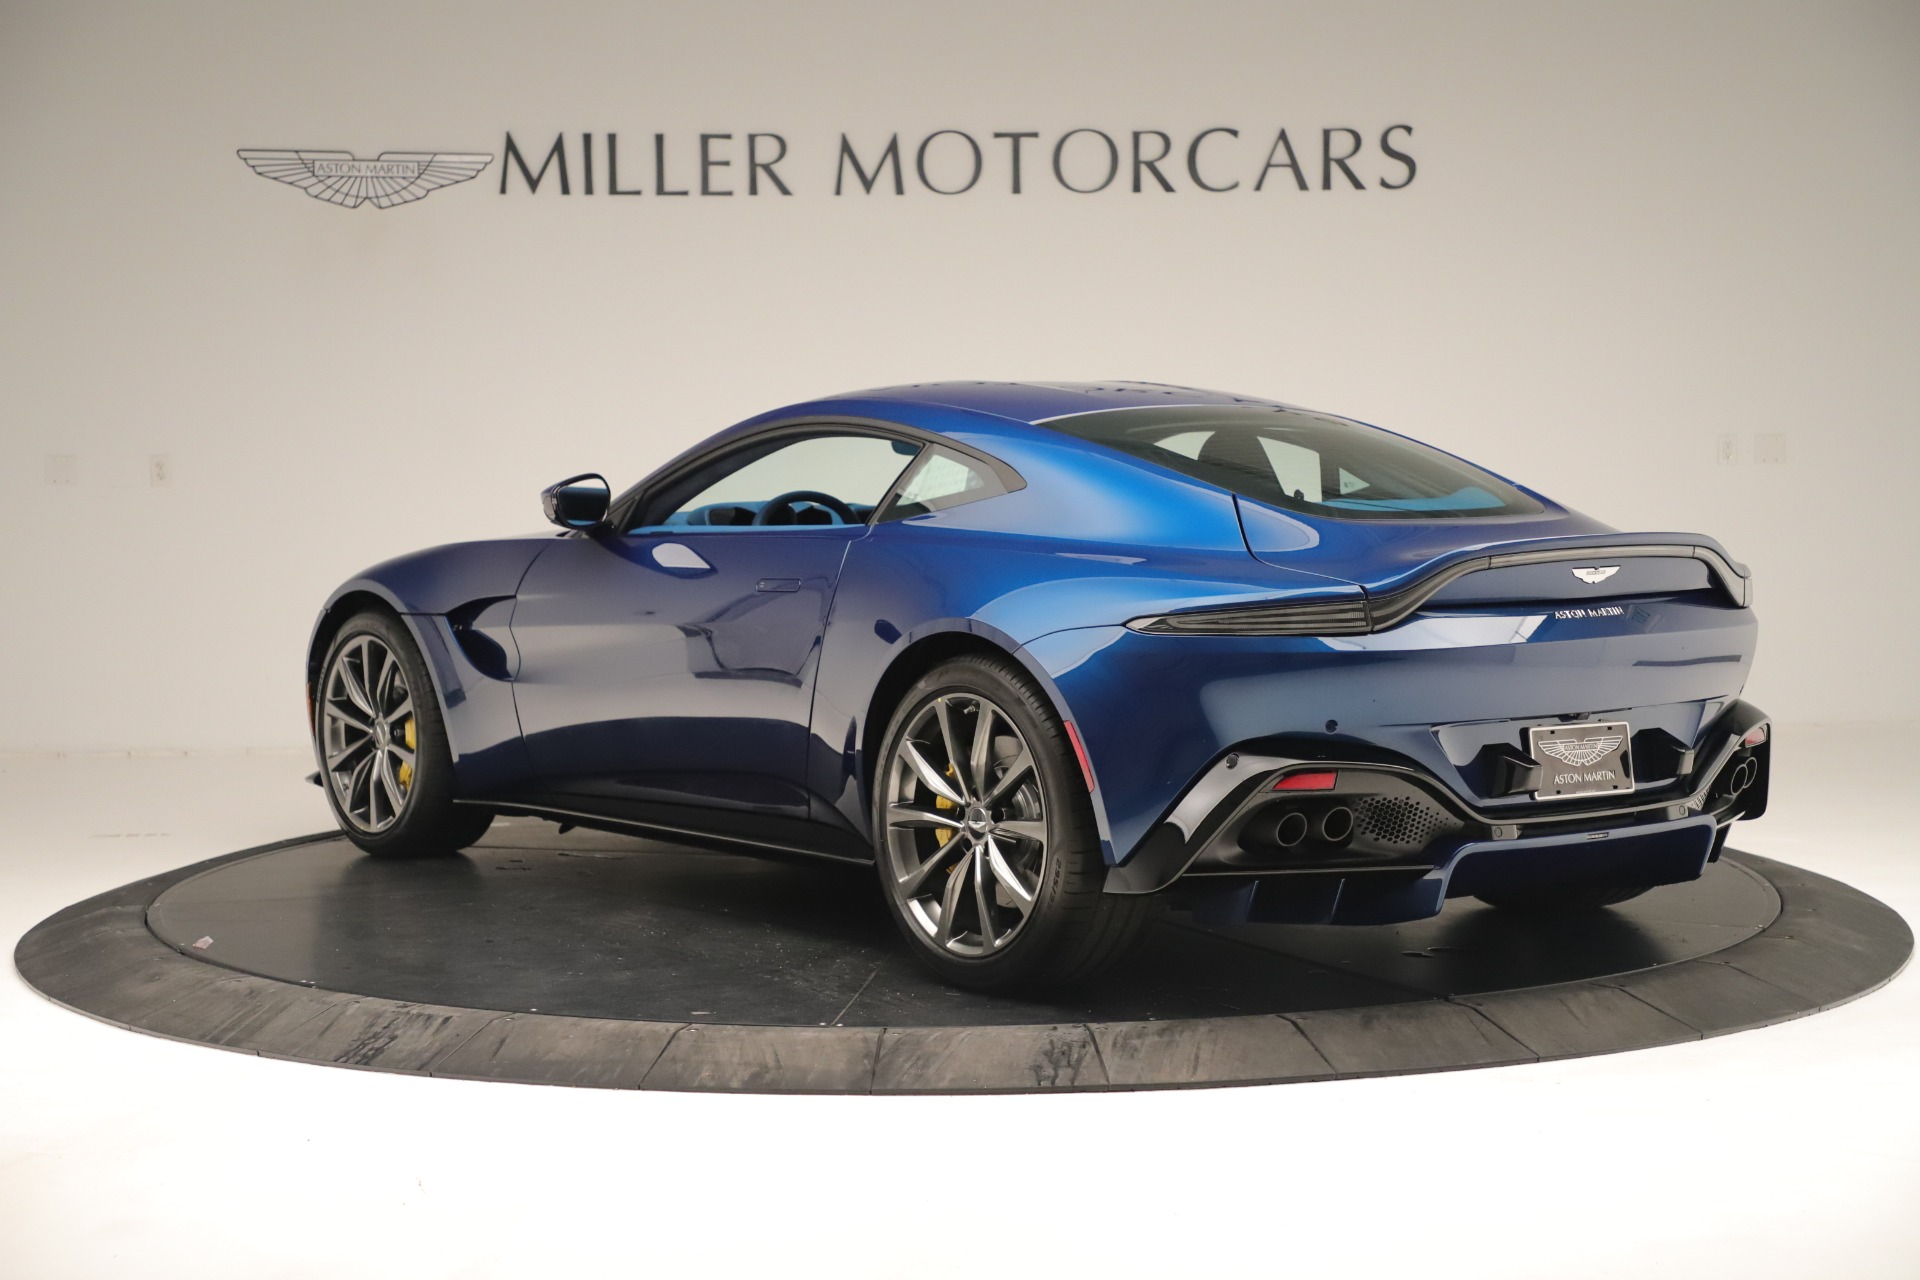 Pre Owned 2020 Aston Martin Vantage Coupe For Sale 159 990 Miller Motorcars Stock A1402b